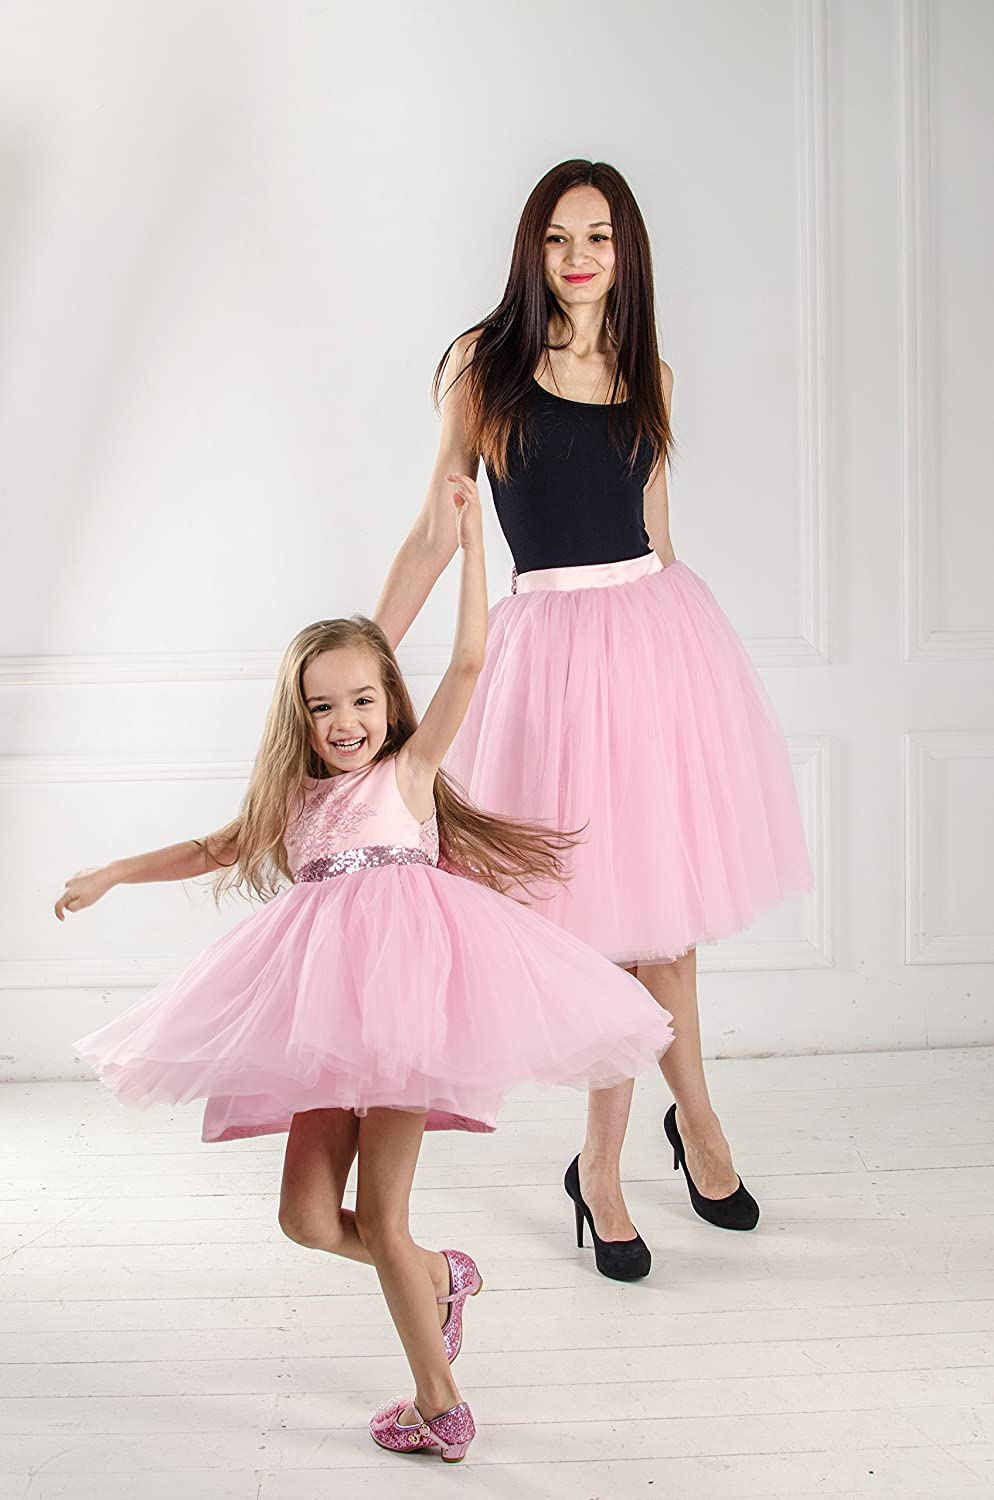 20d1136597 Amazon.com: Matching pink outfits Mother daughter matching tutu dresses, Mommy  and me pink dress skirt with sequin gold bow, party dress, birthday dress:  ...